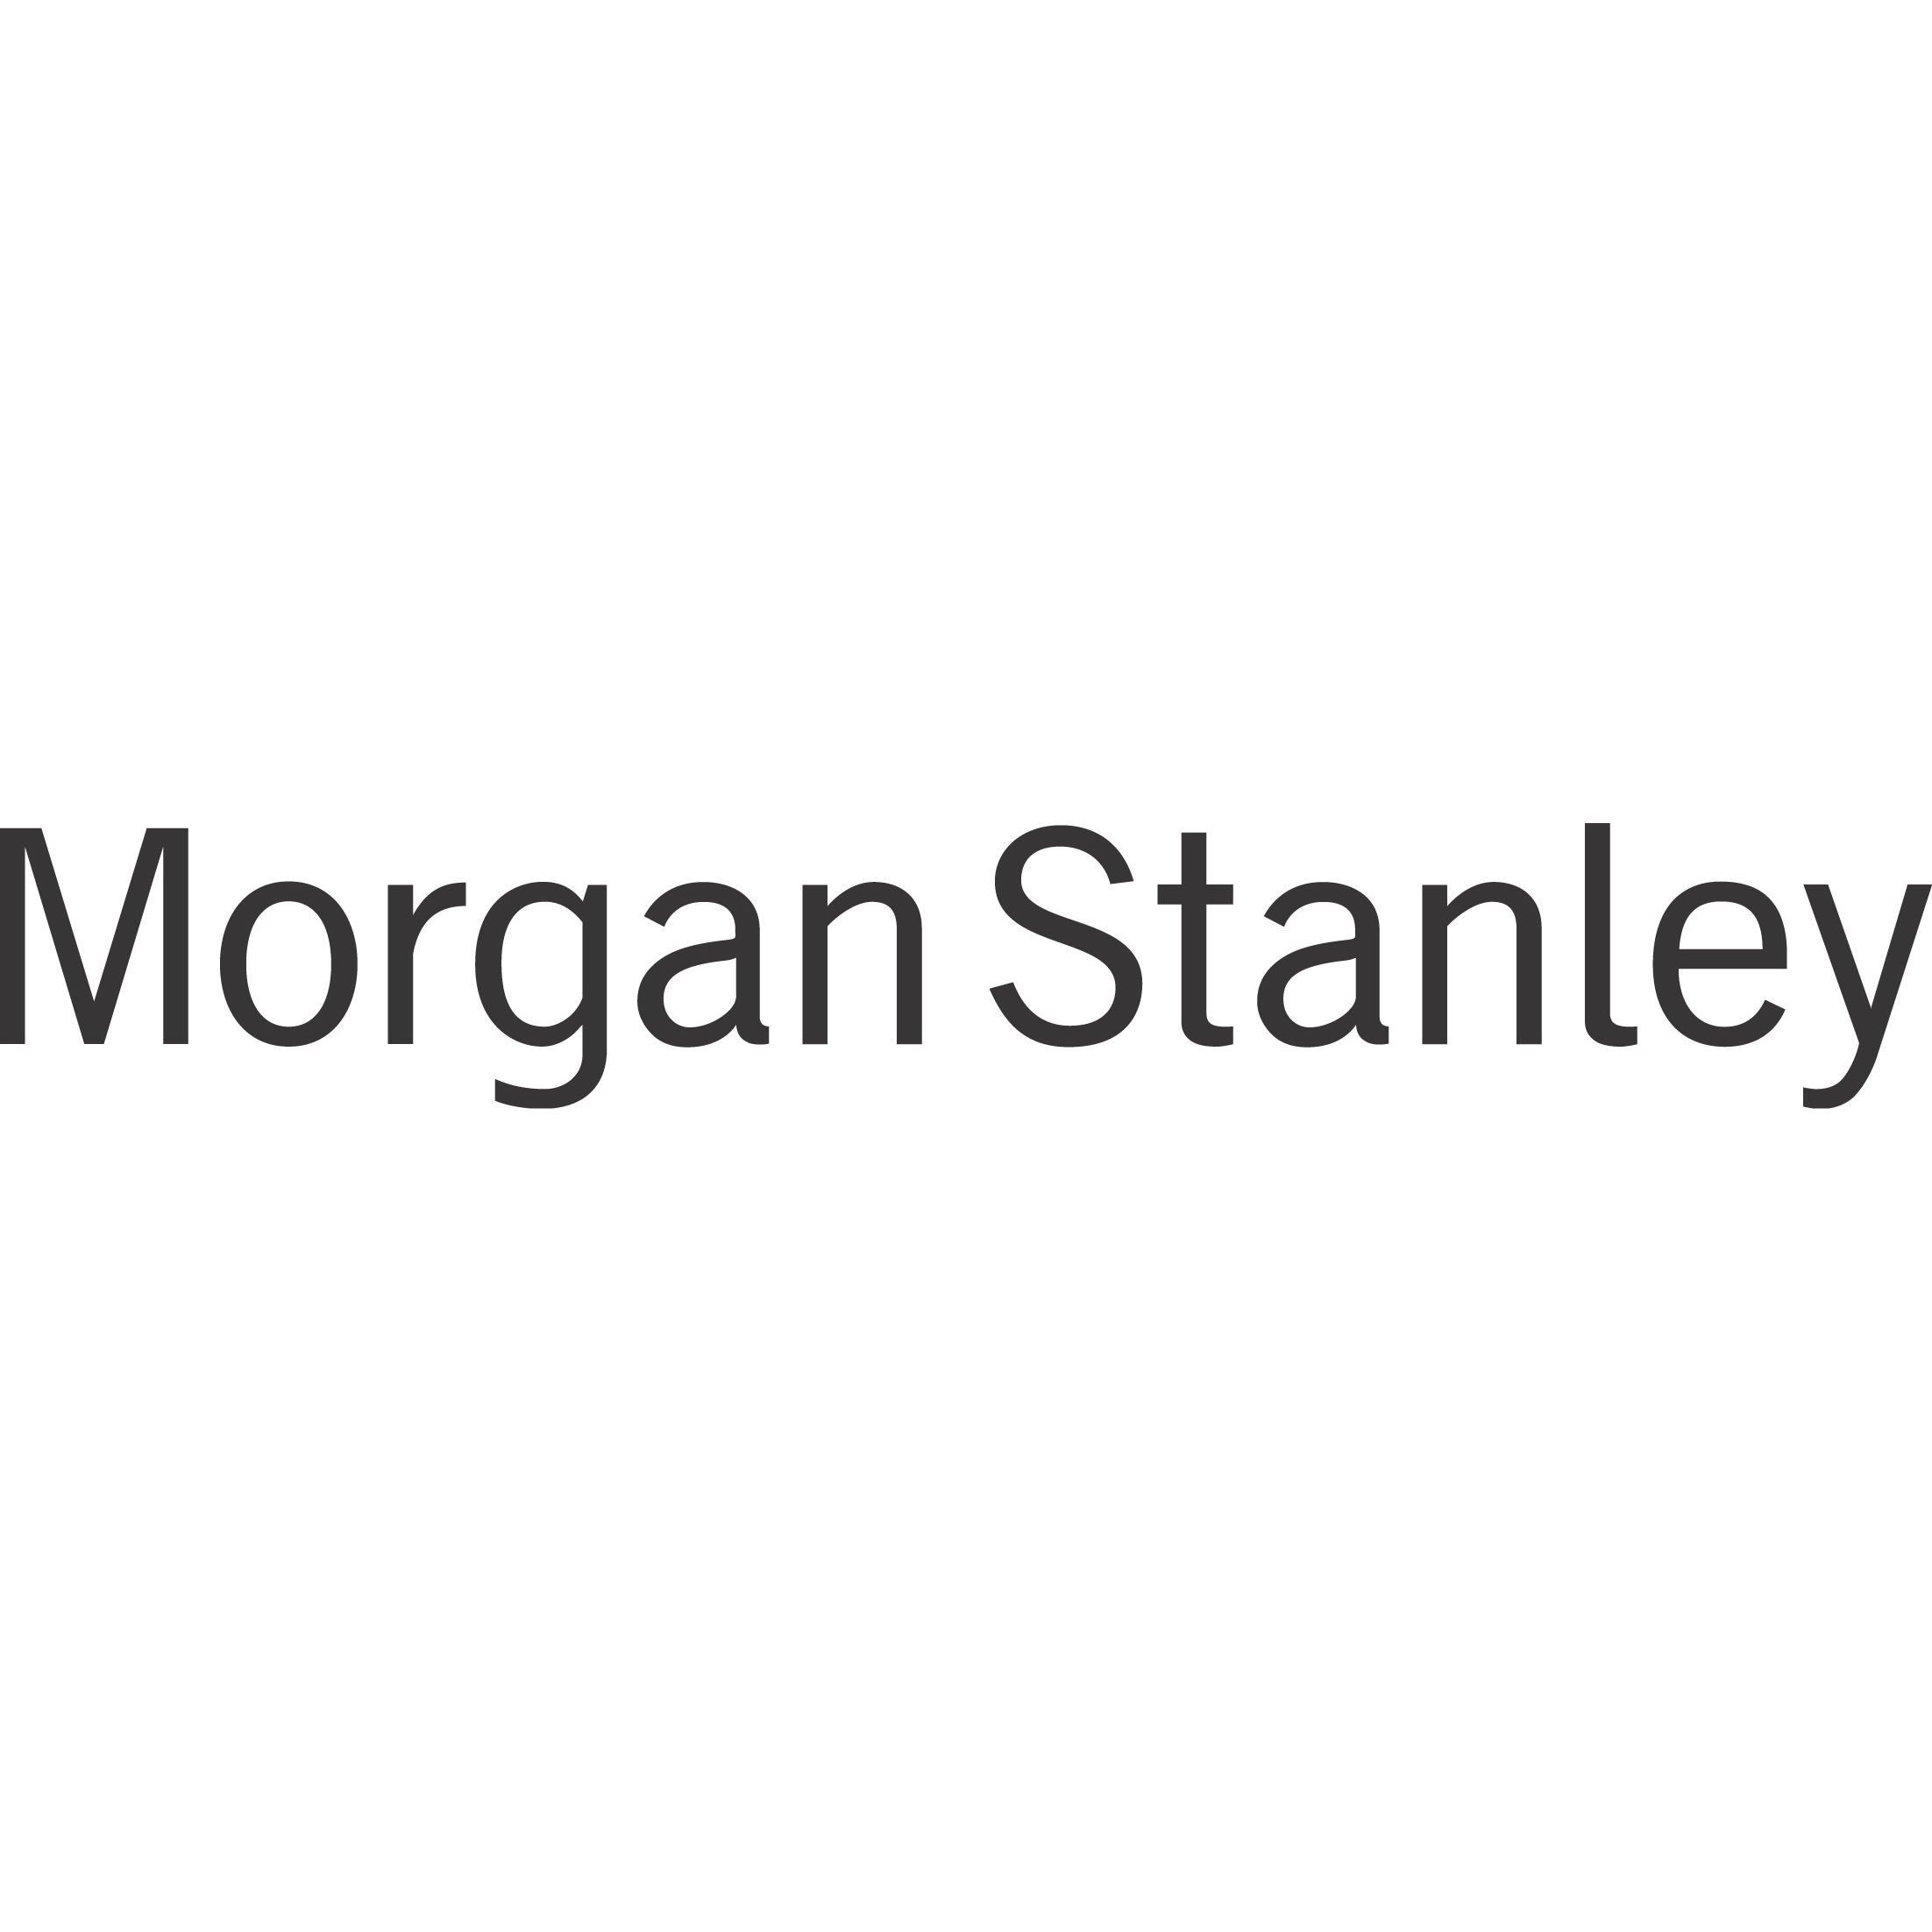 Paul S Mandel - Morgan Stanley